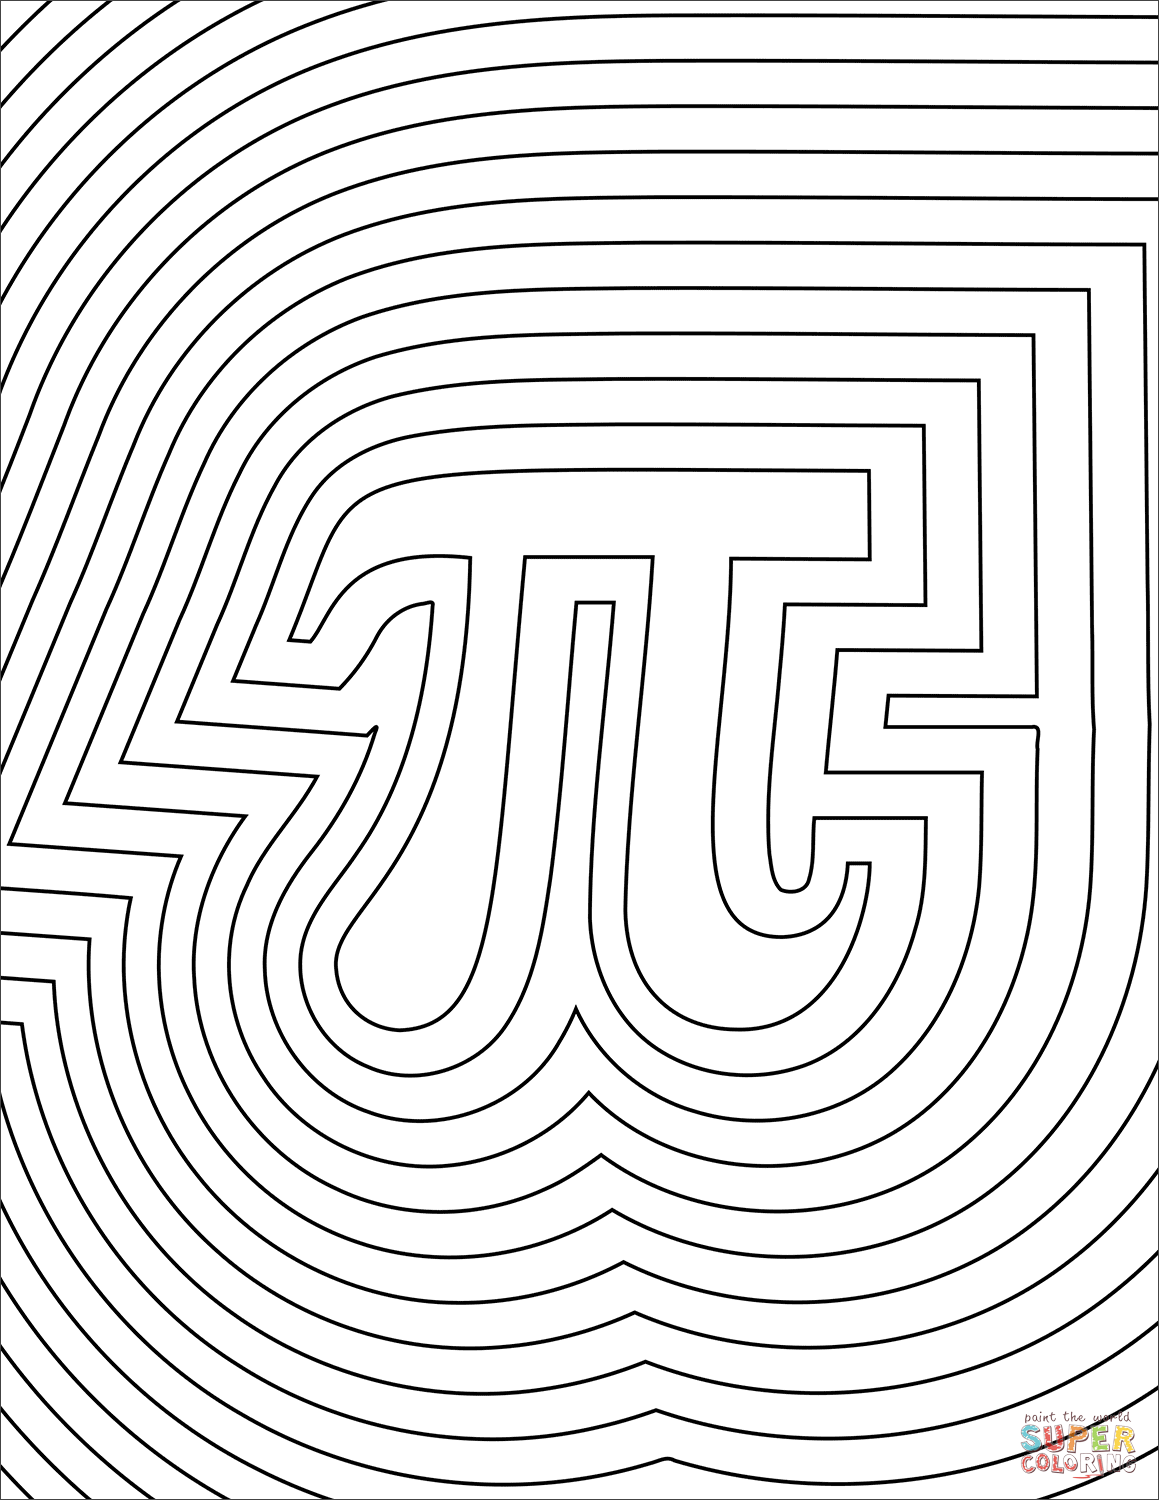 Number Pattern Coloring Page